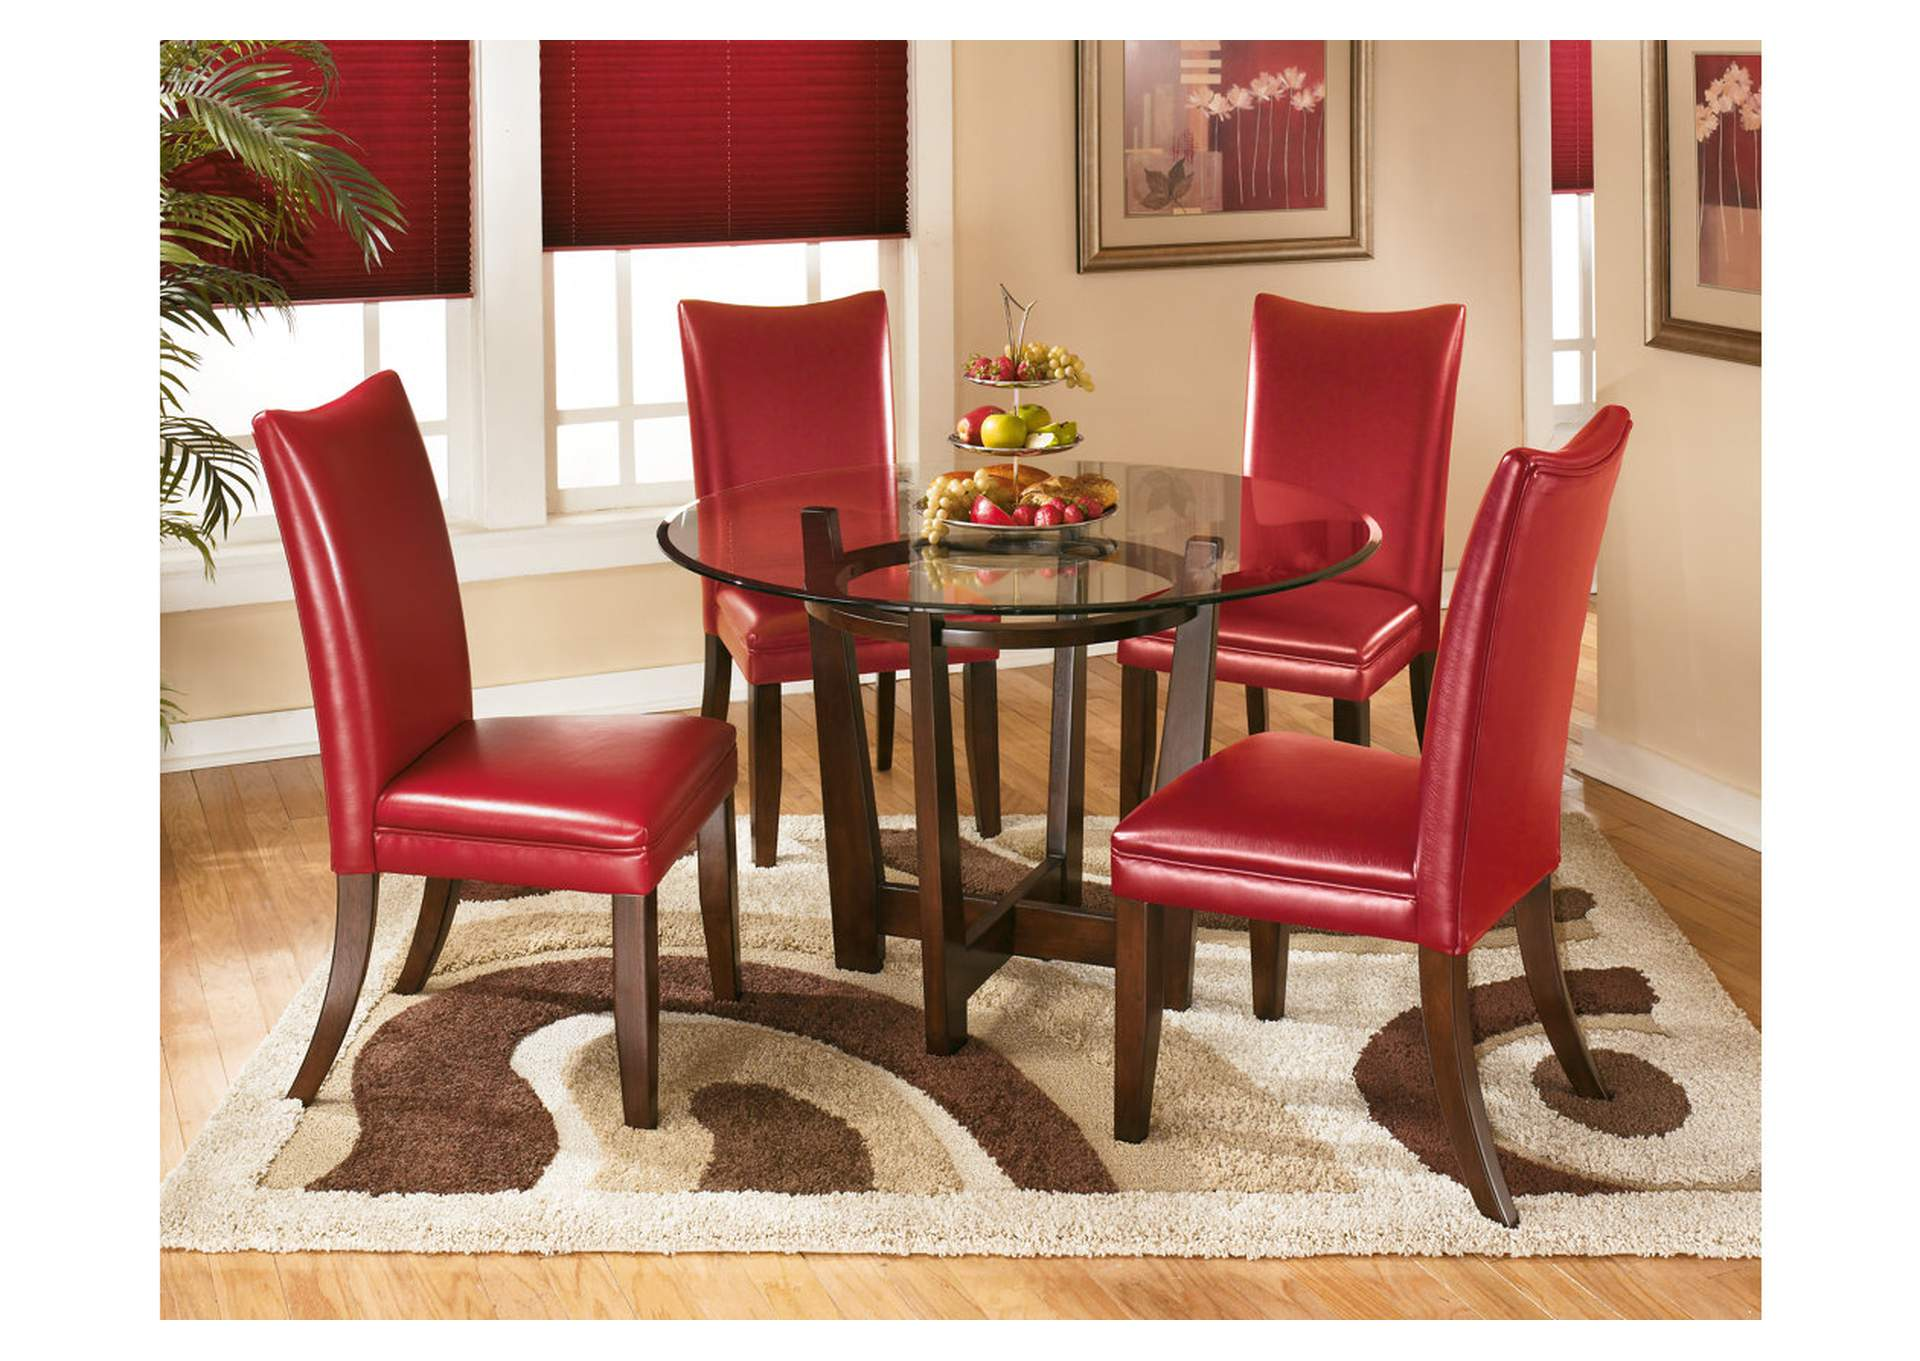 danto furniture charell round dining table w/4 red side chairs